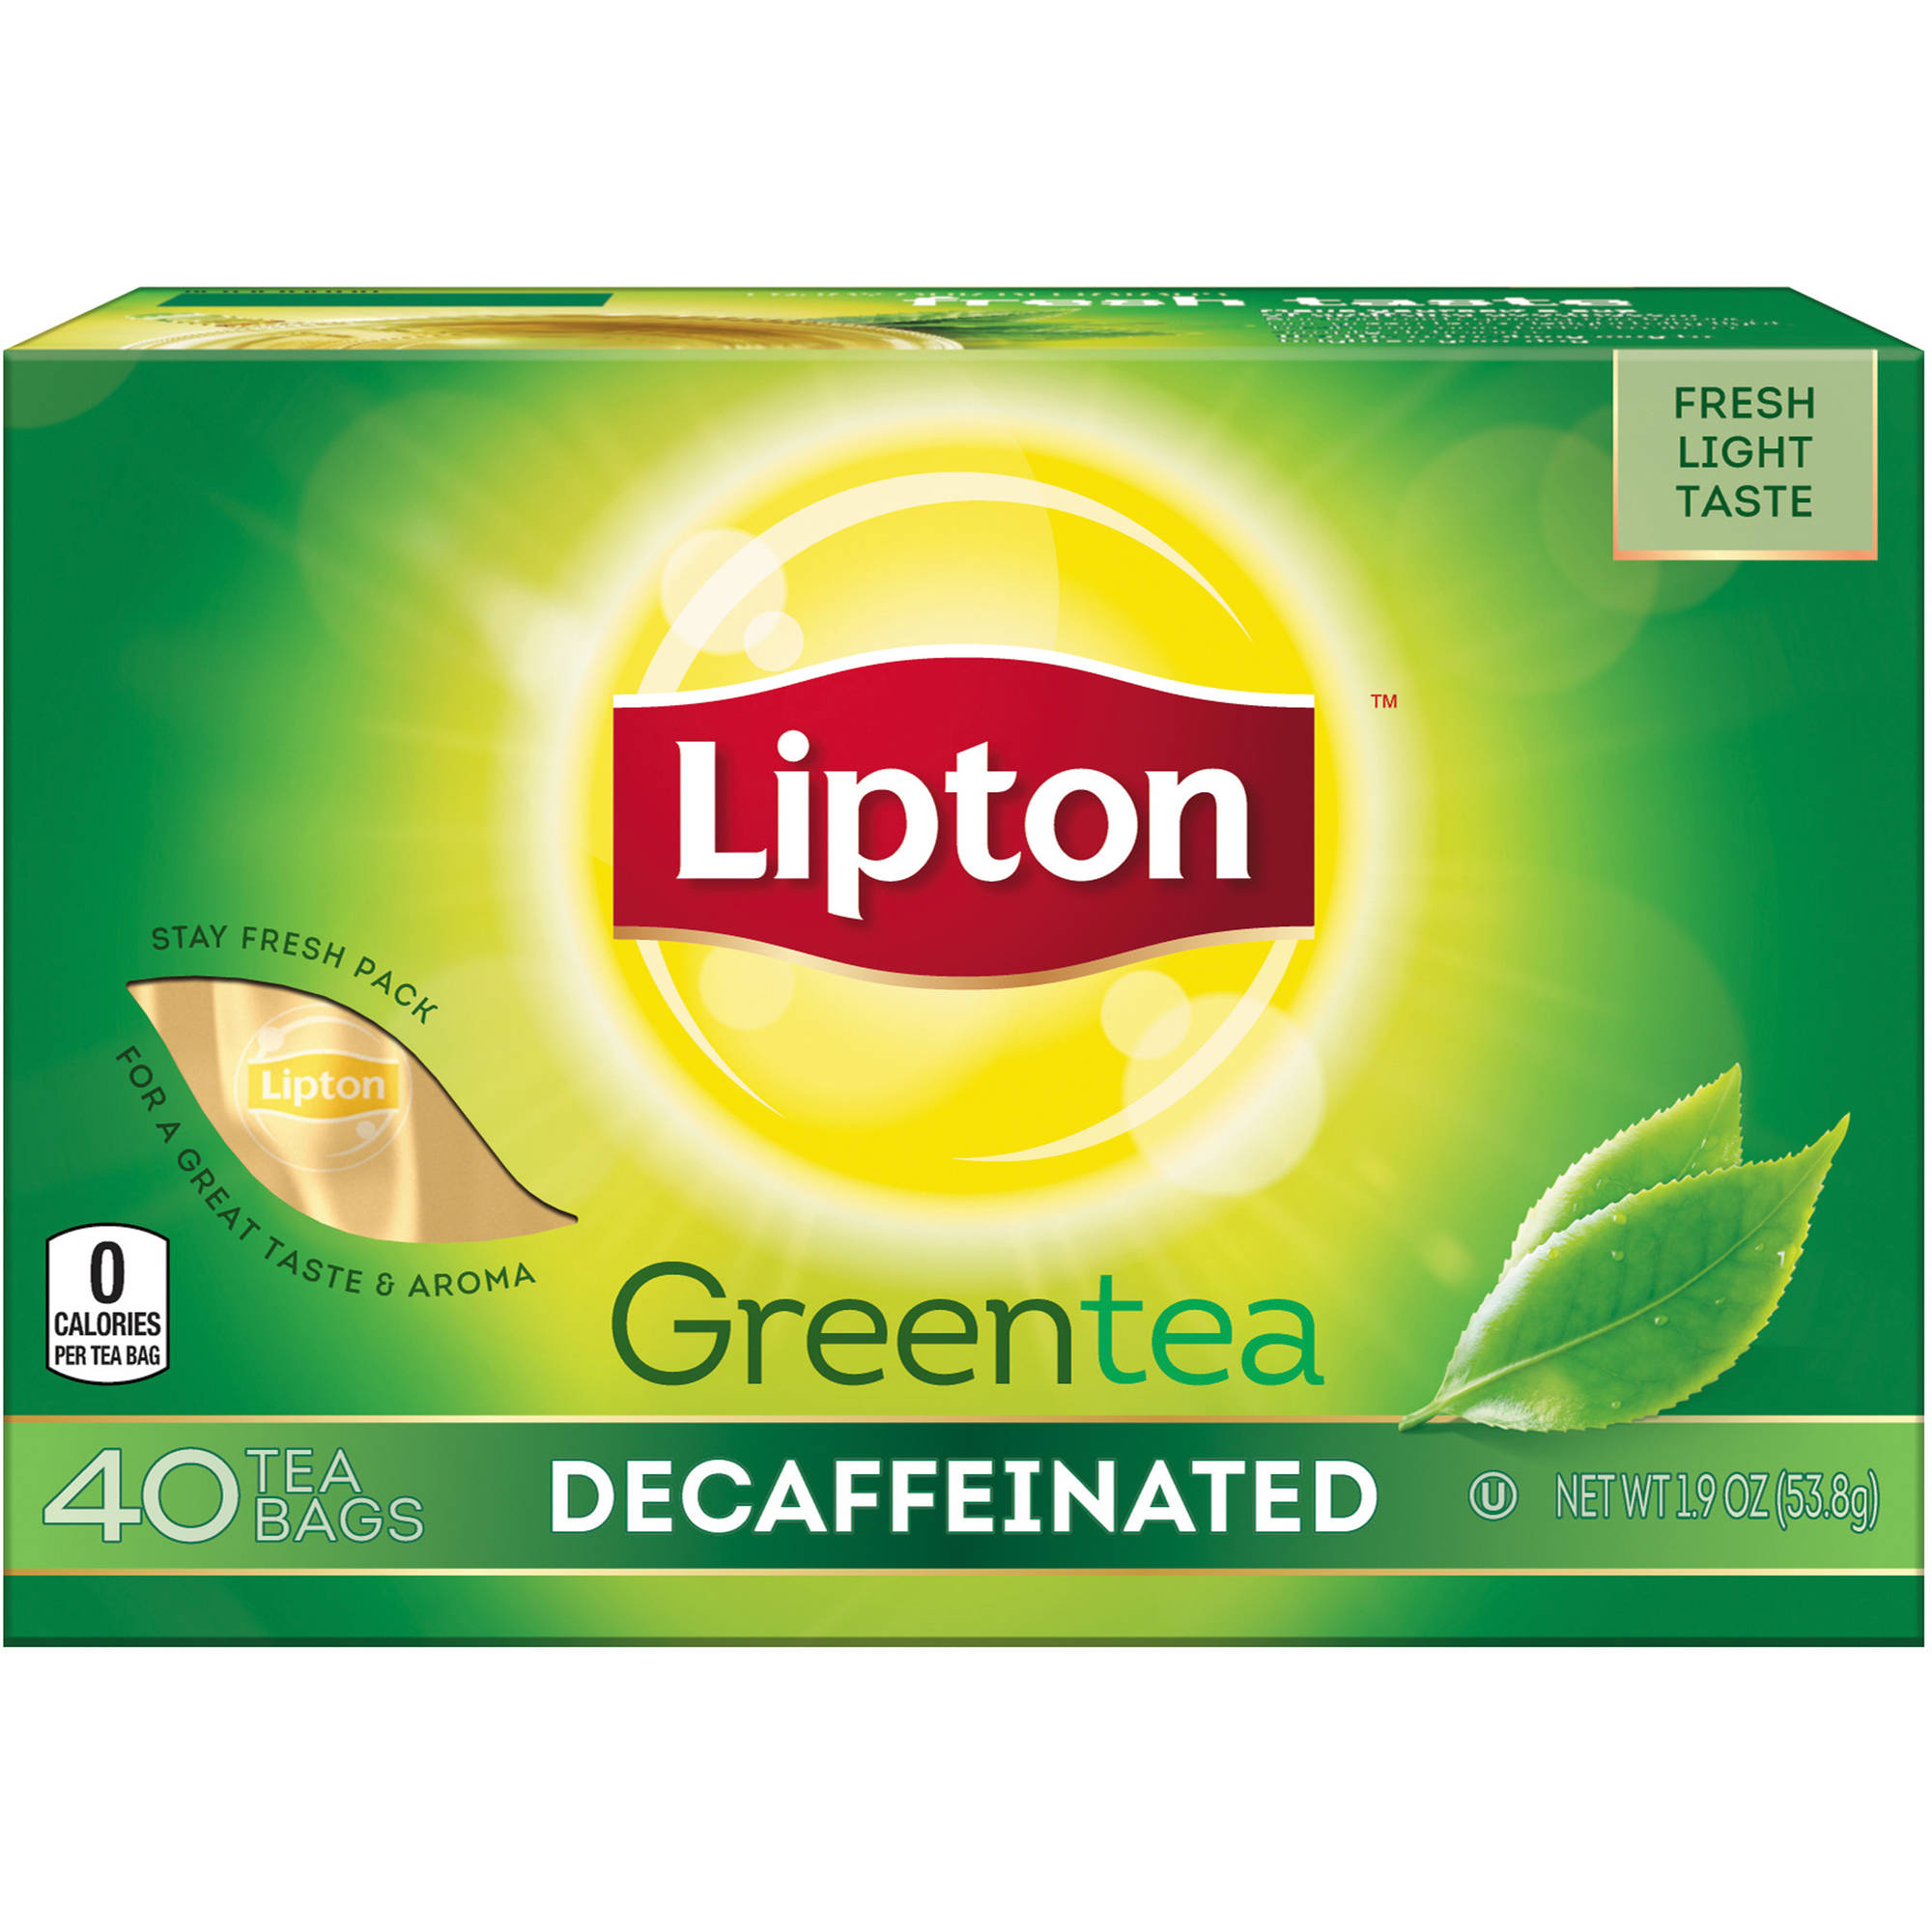 Lipton Decaffeinated Green Tea, 40 ct